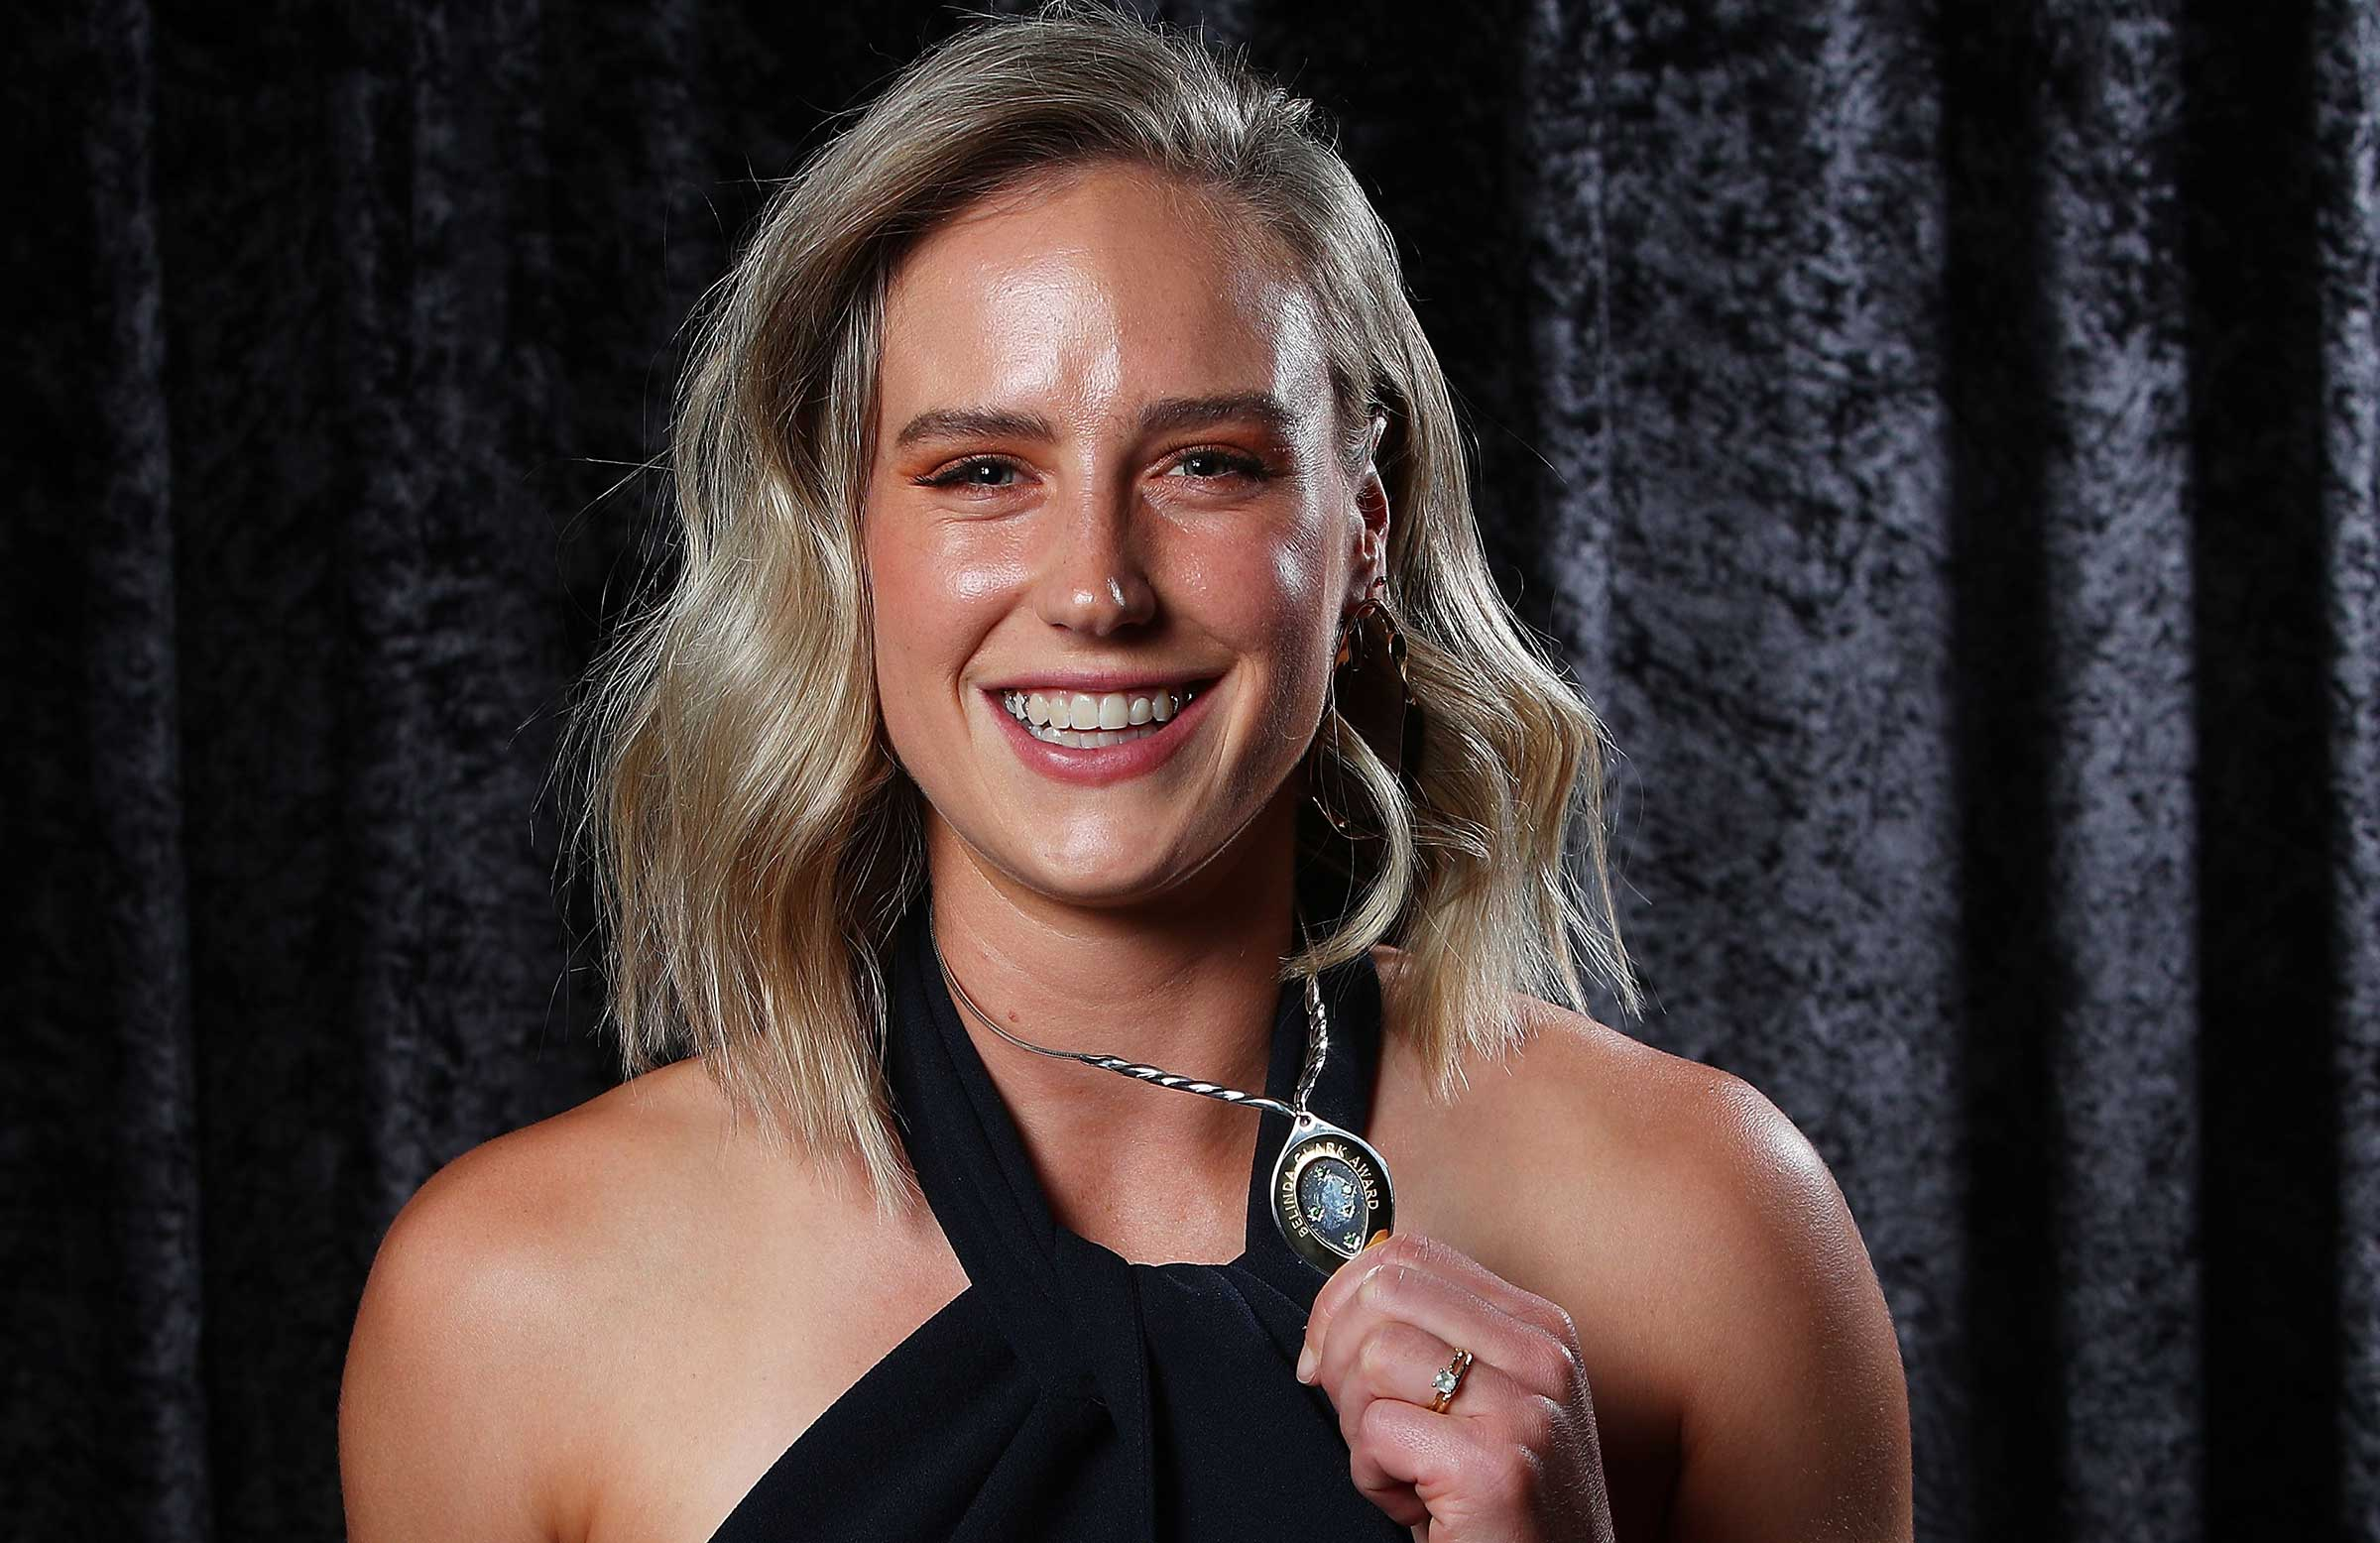 ellyse perry - photo #20